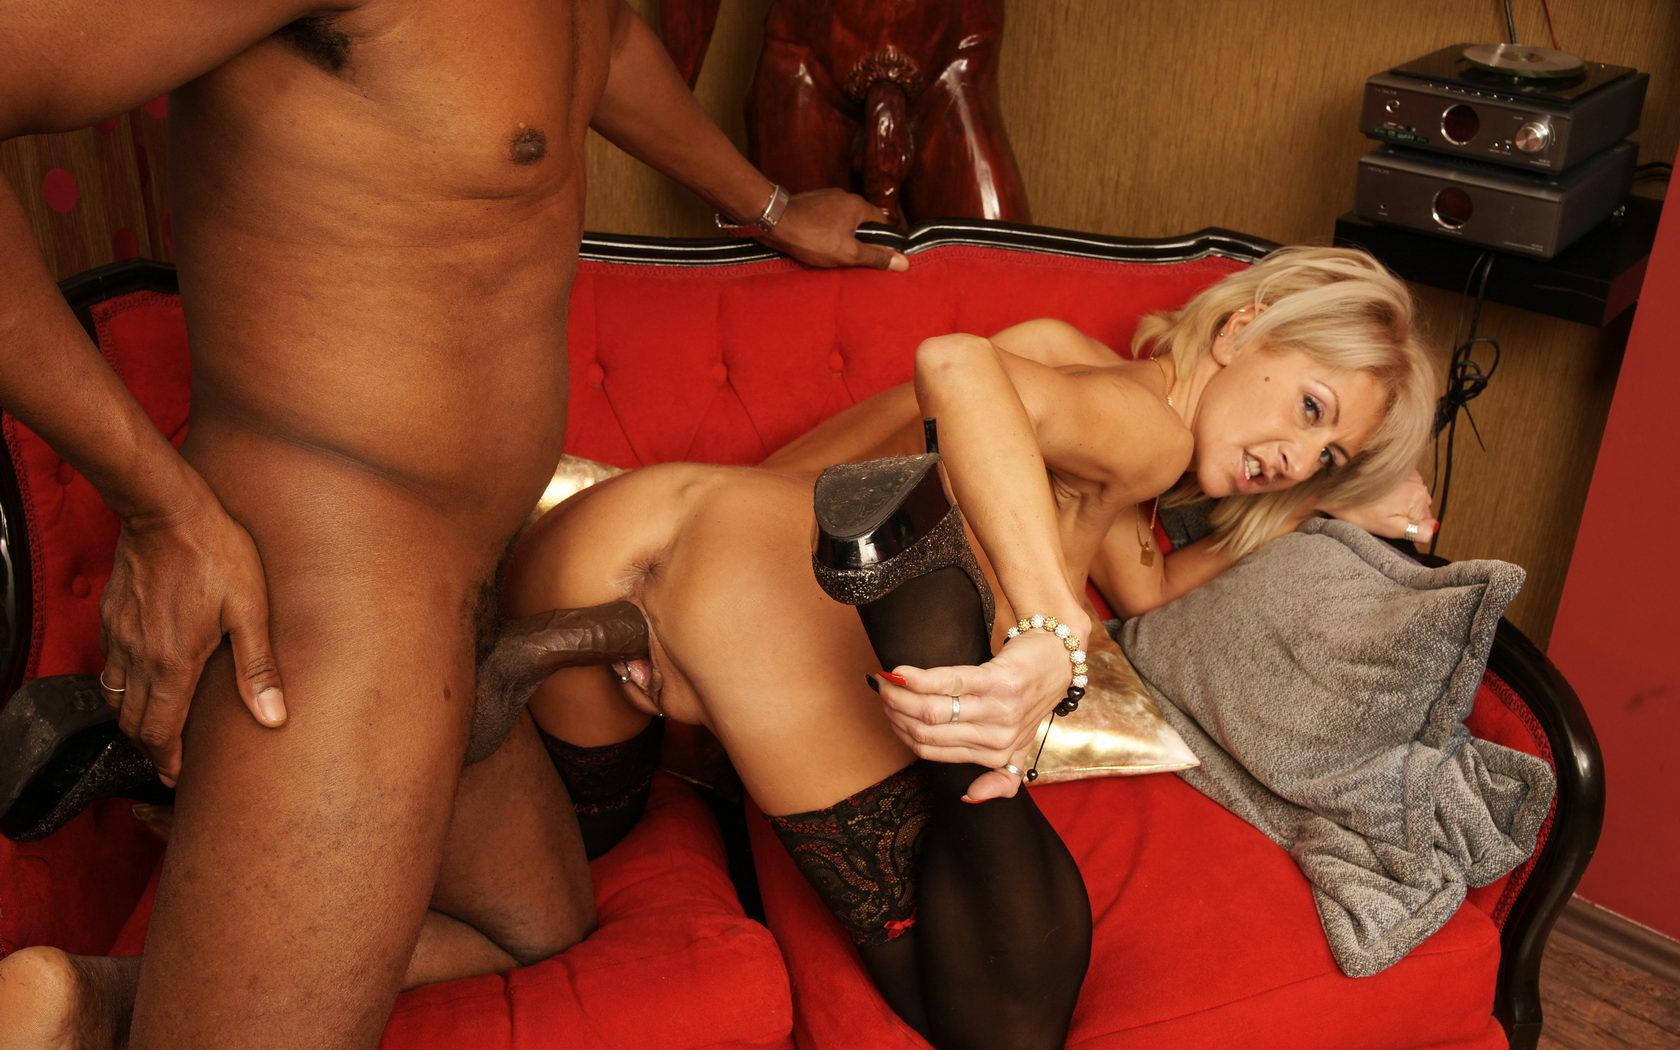 Kaitlyn a 57 old kind-hearted FUCKED GRANDMOTHER a sexy mature mom doggystyle hard  by her  black  lover